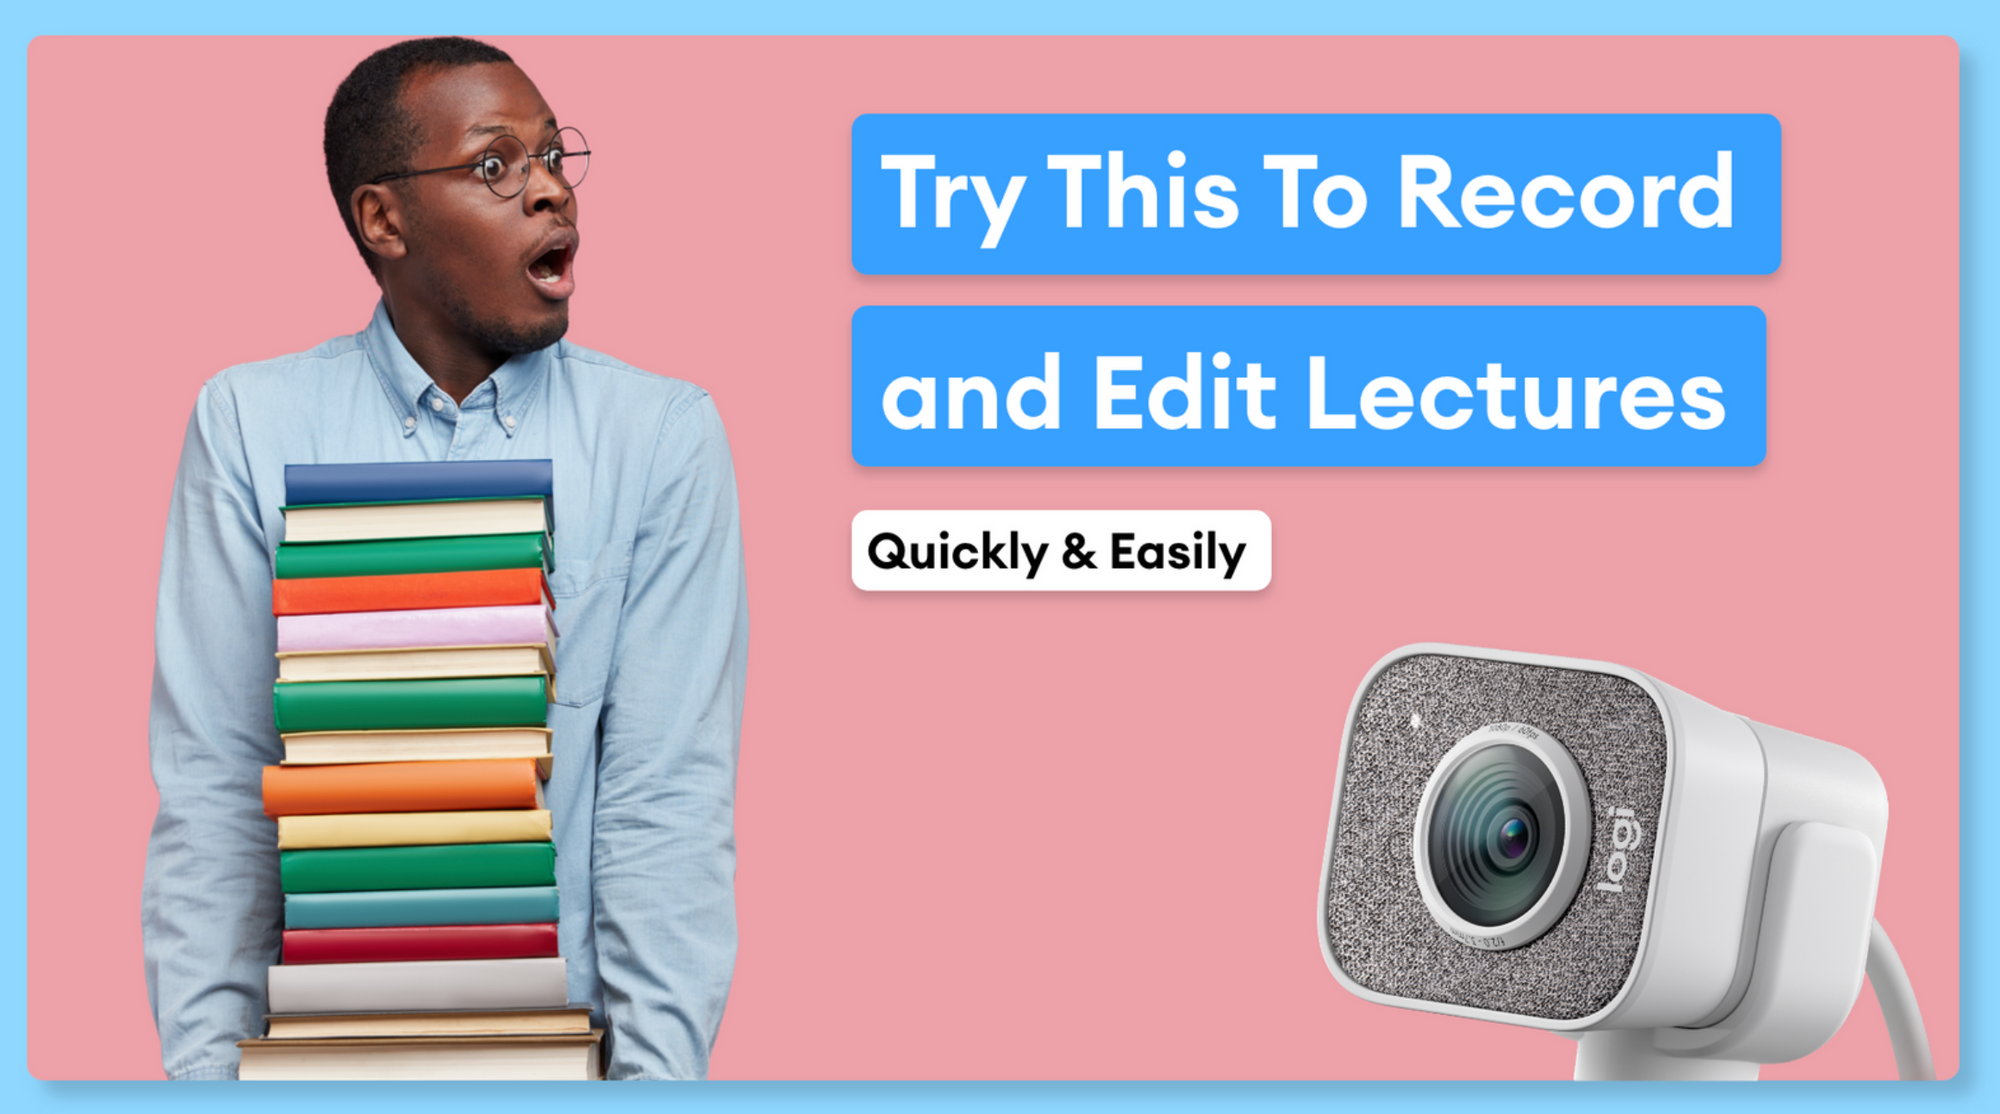 Everything You Need To Know About Lecture Capturing (Easy and Online)